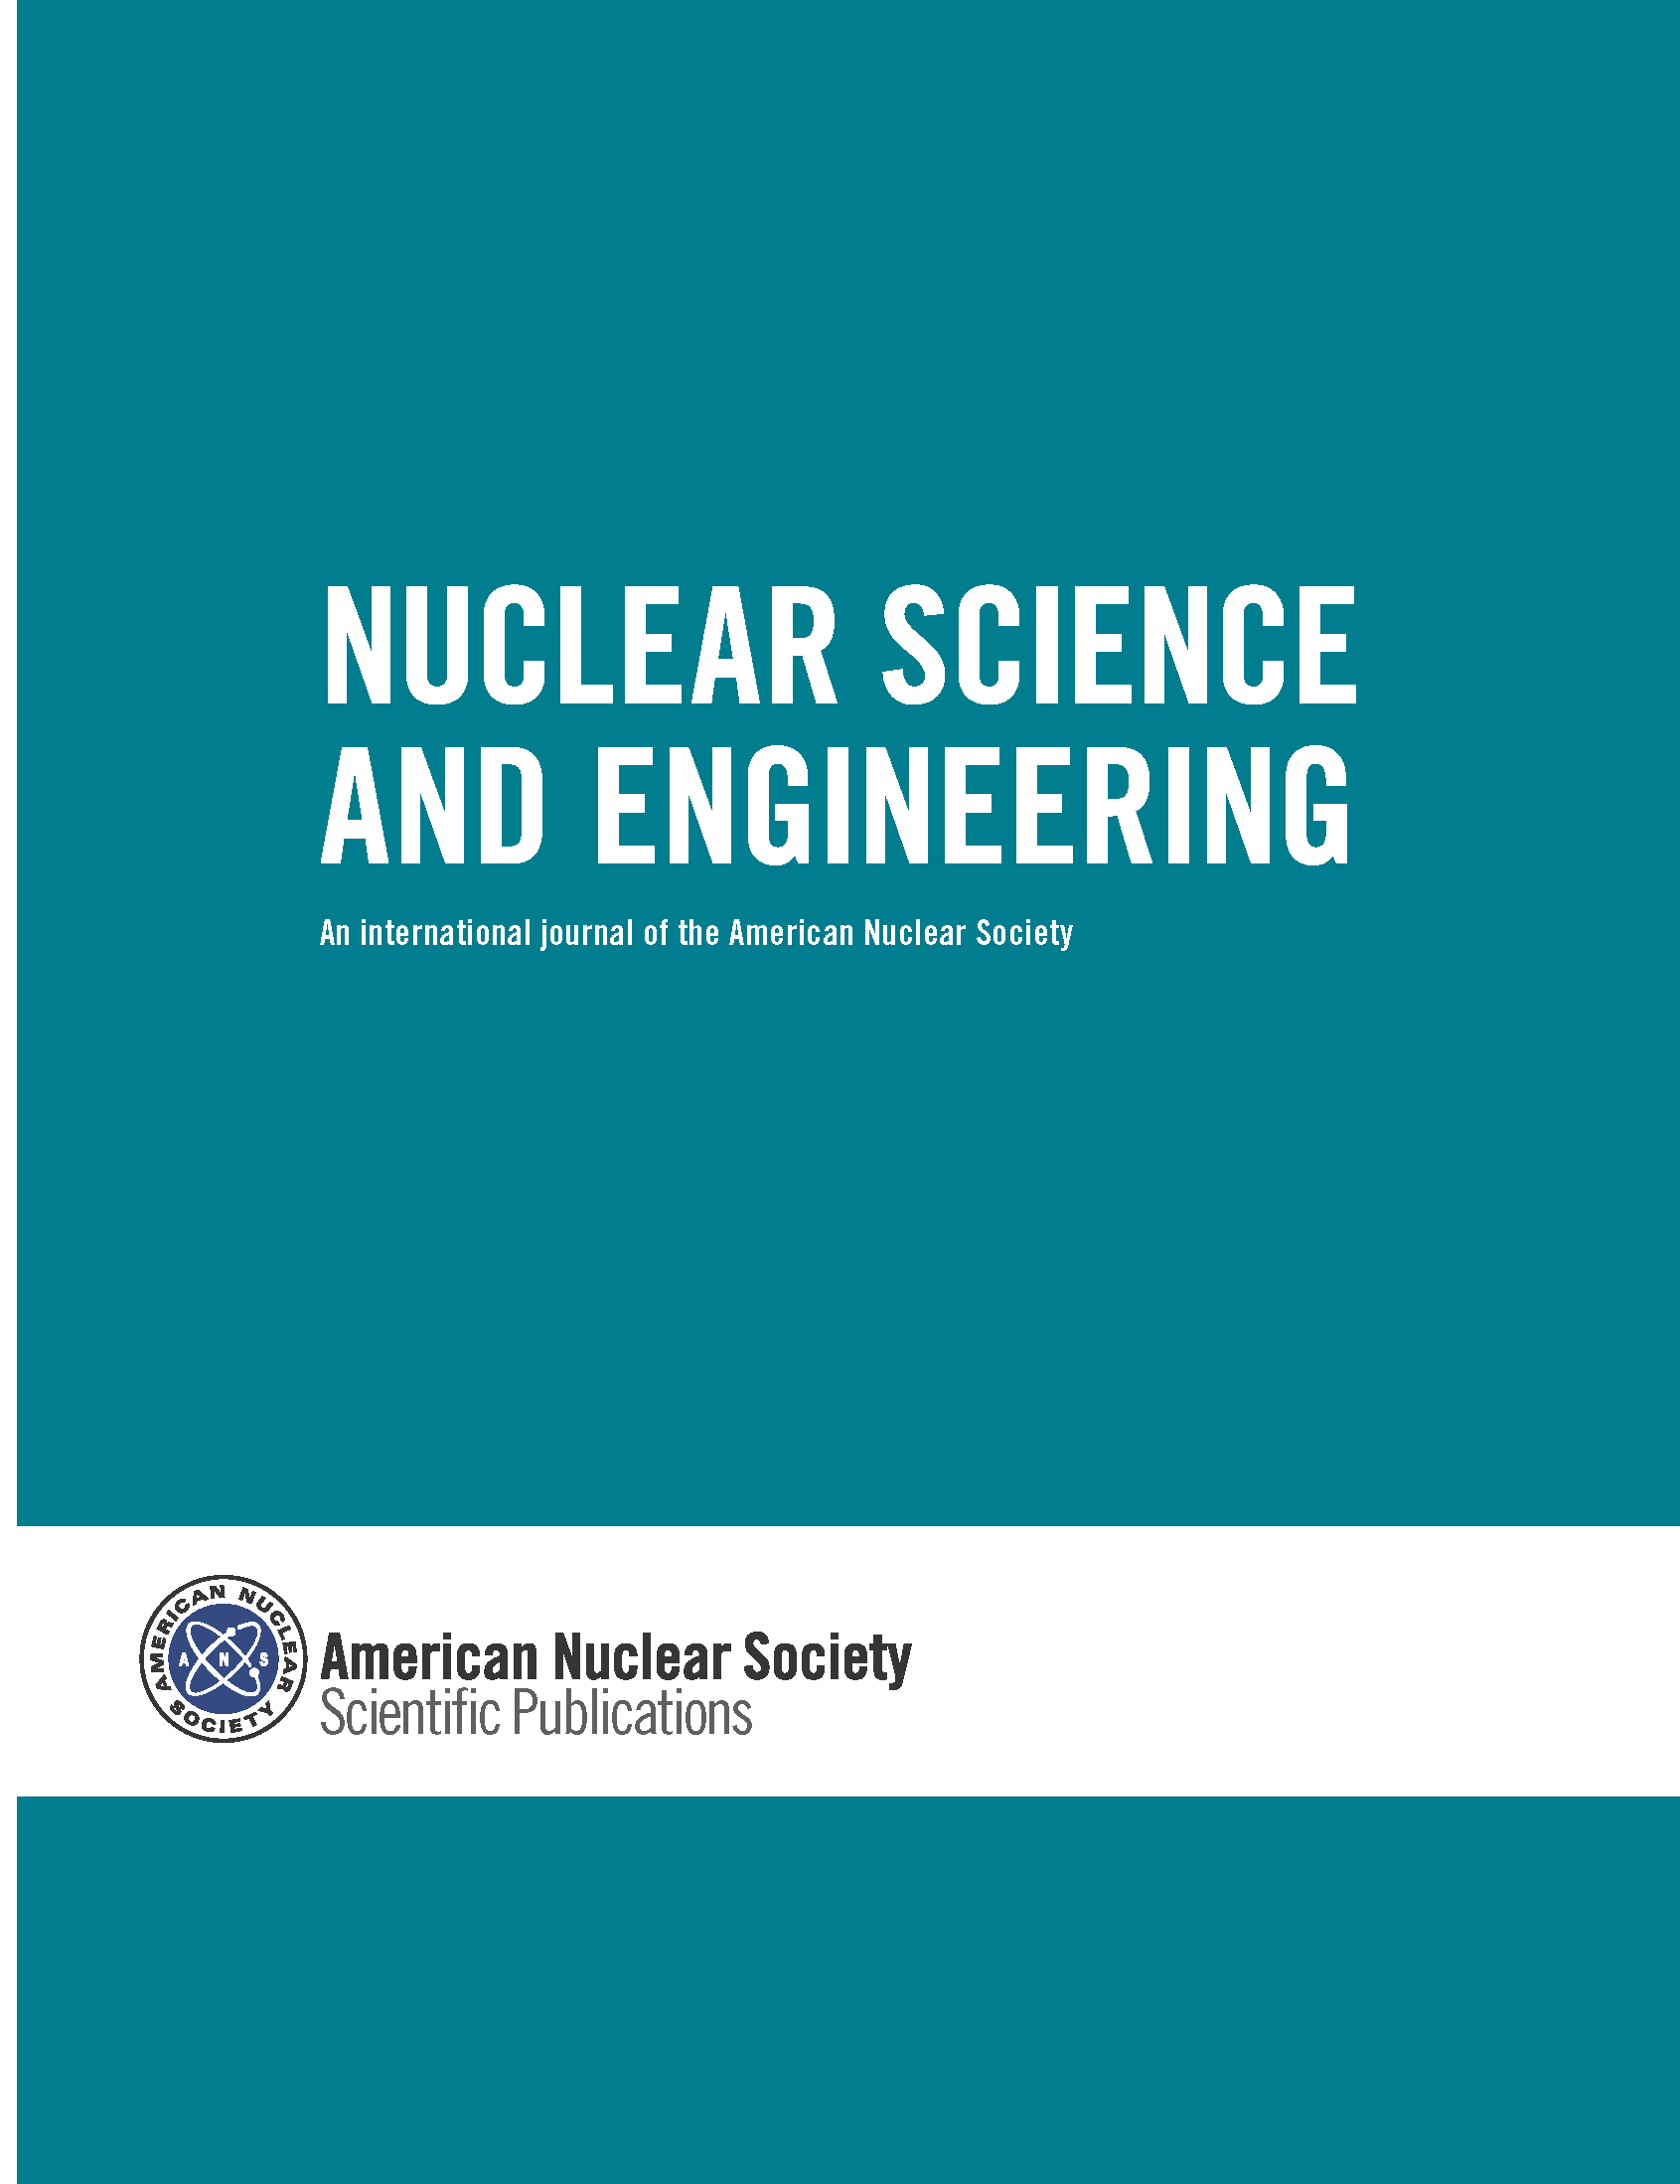 Nuclear Science and Engineering cover